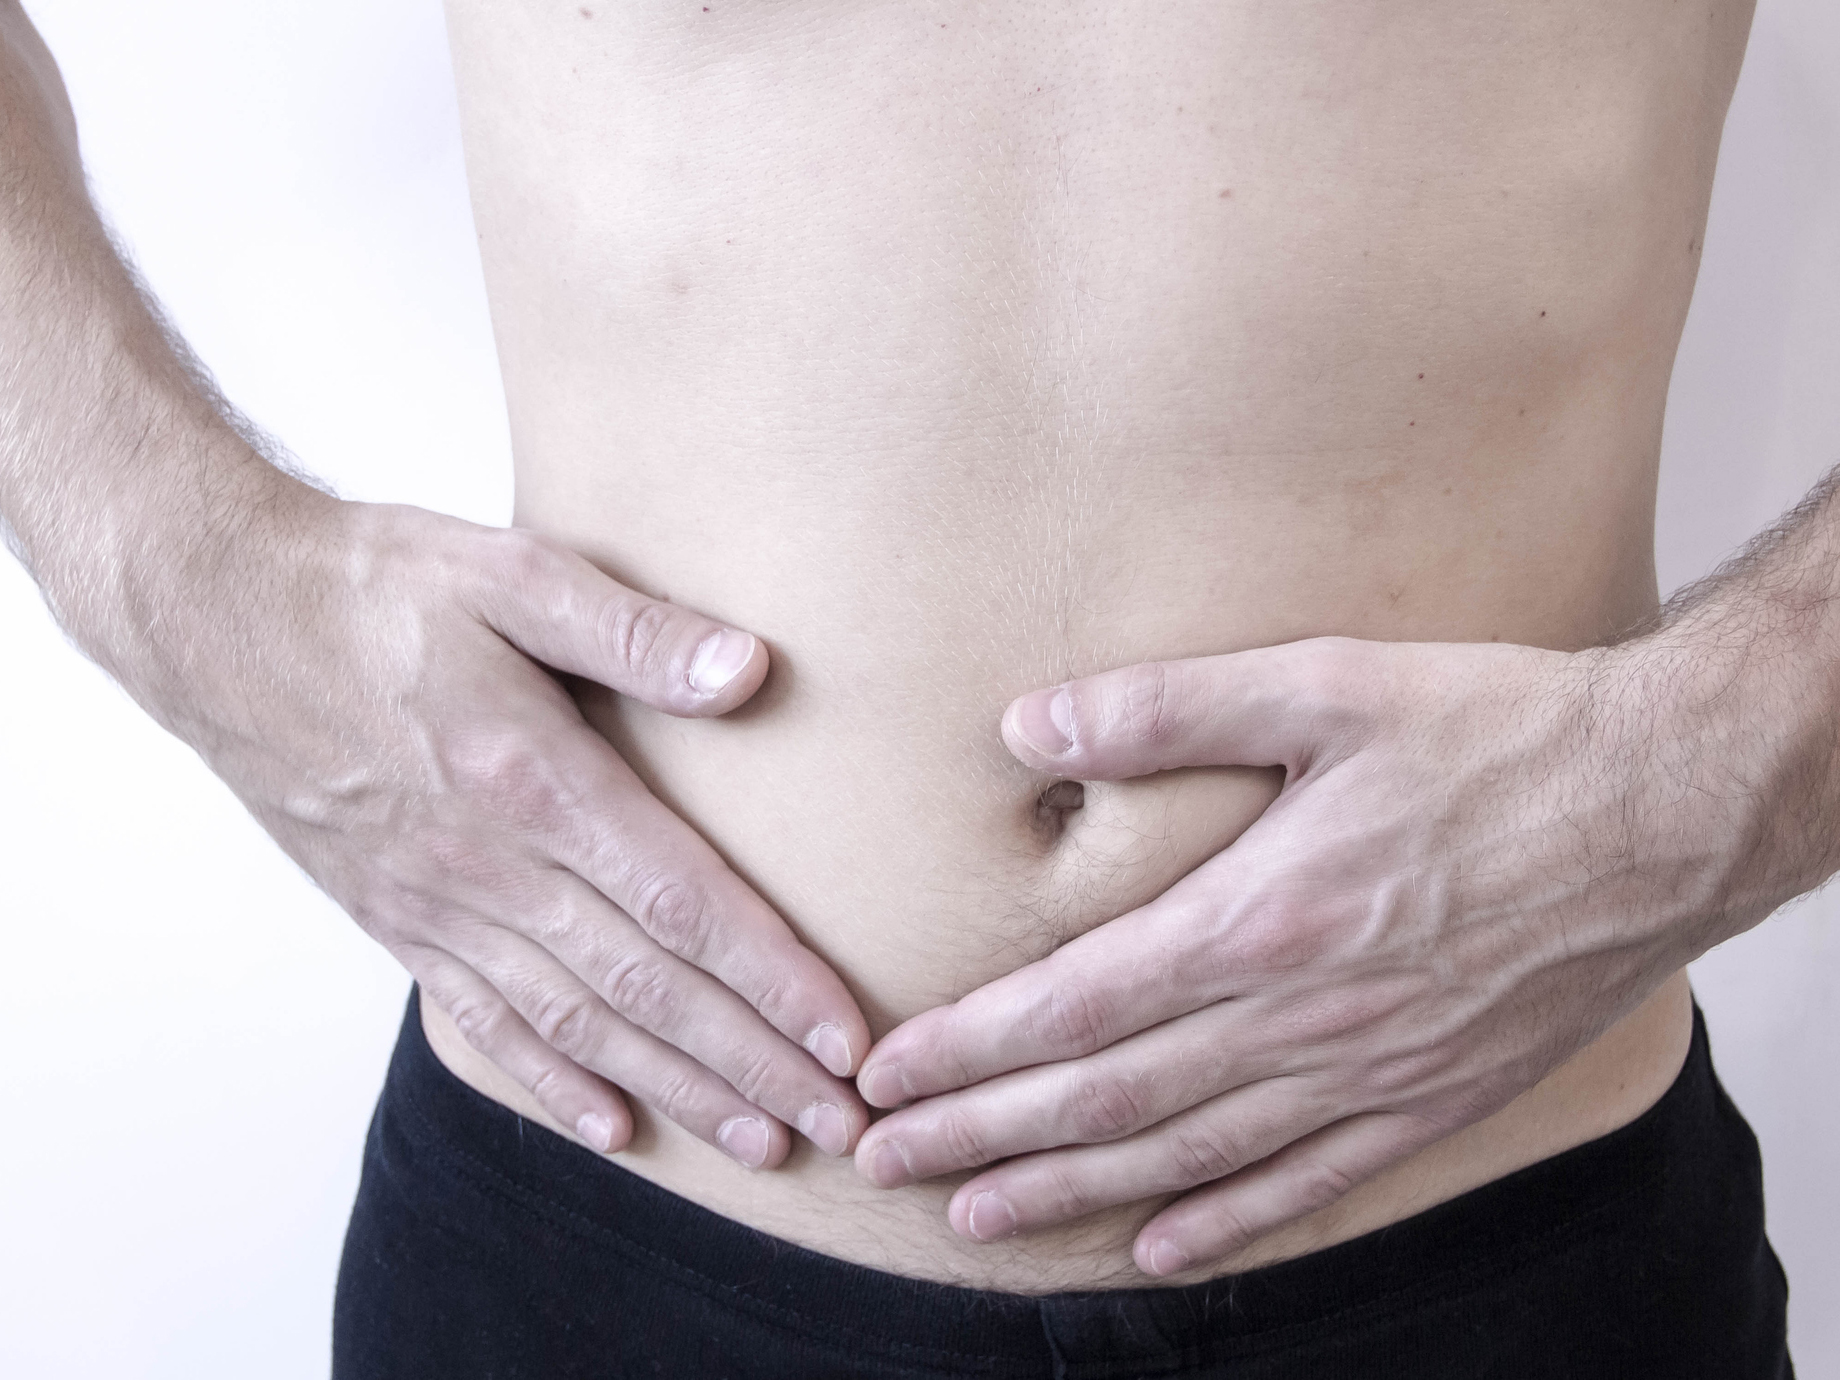 What your appendix has to do with getting Parkinson's